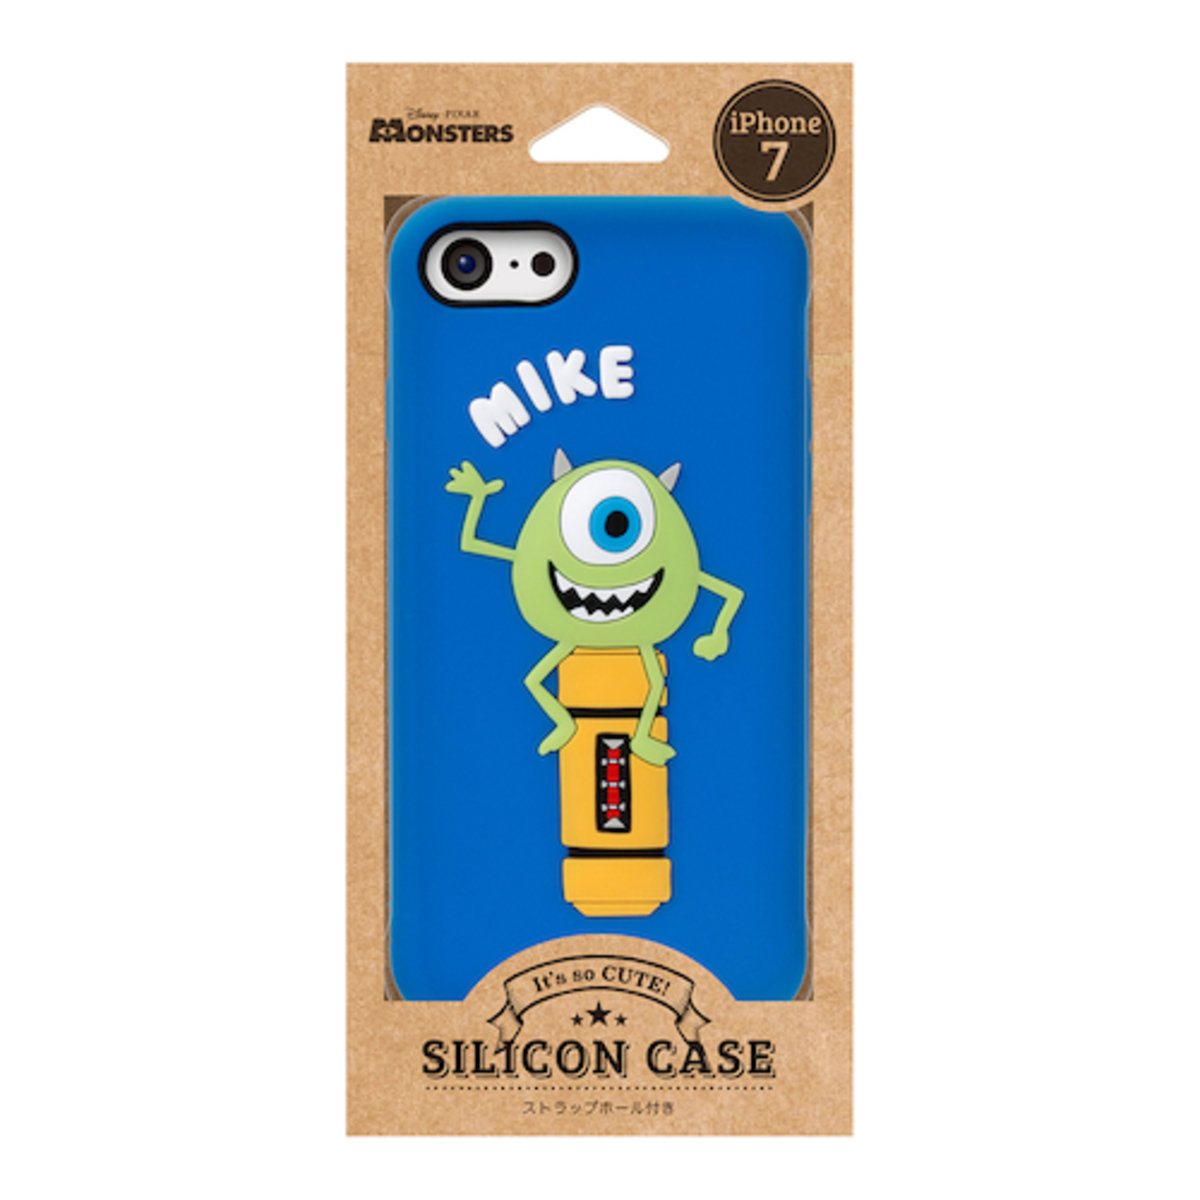 iPhone 7 / iPhone 8 Disney Mike Silicon Mobile Phone Case DCS139MOI